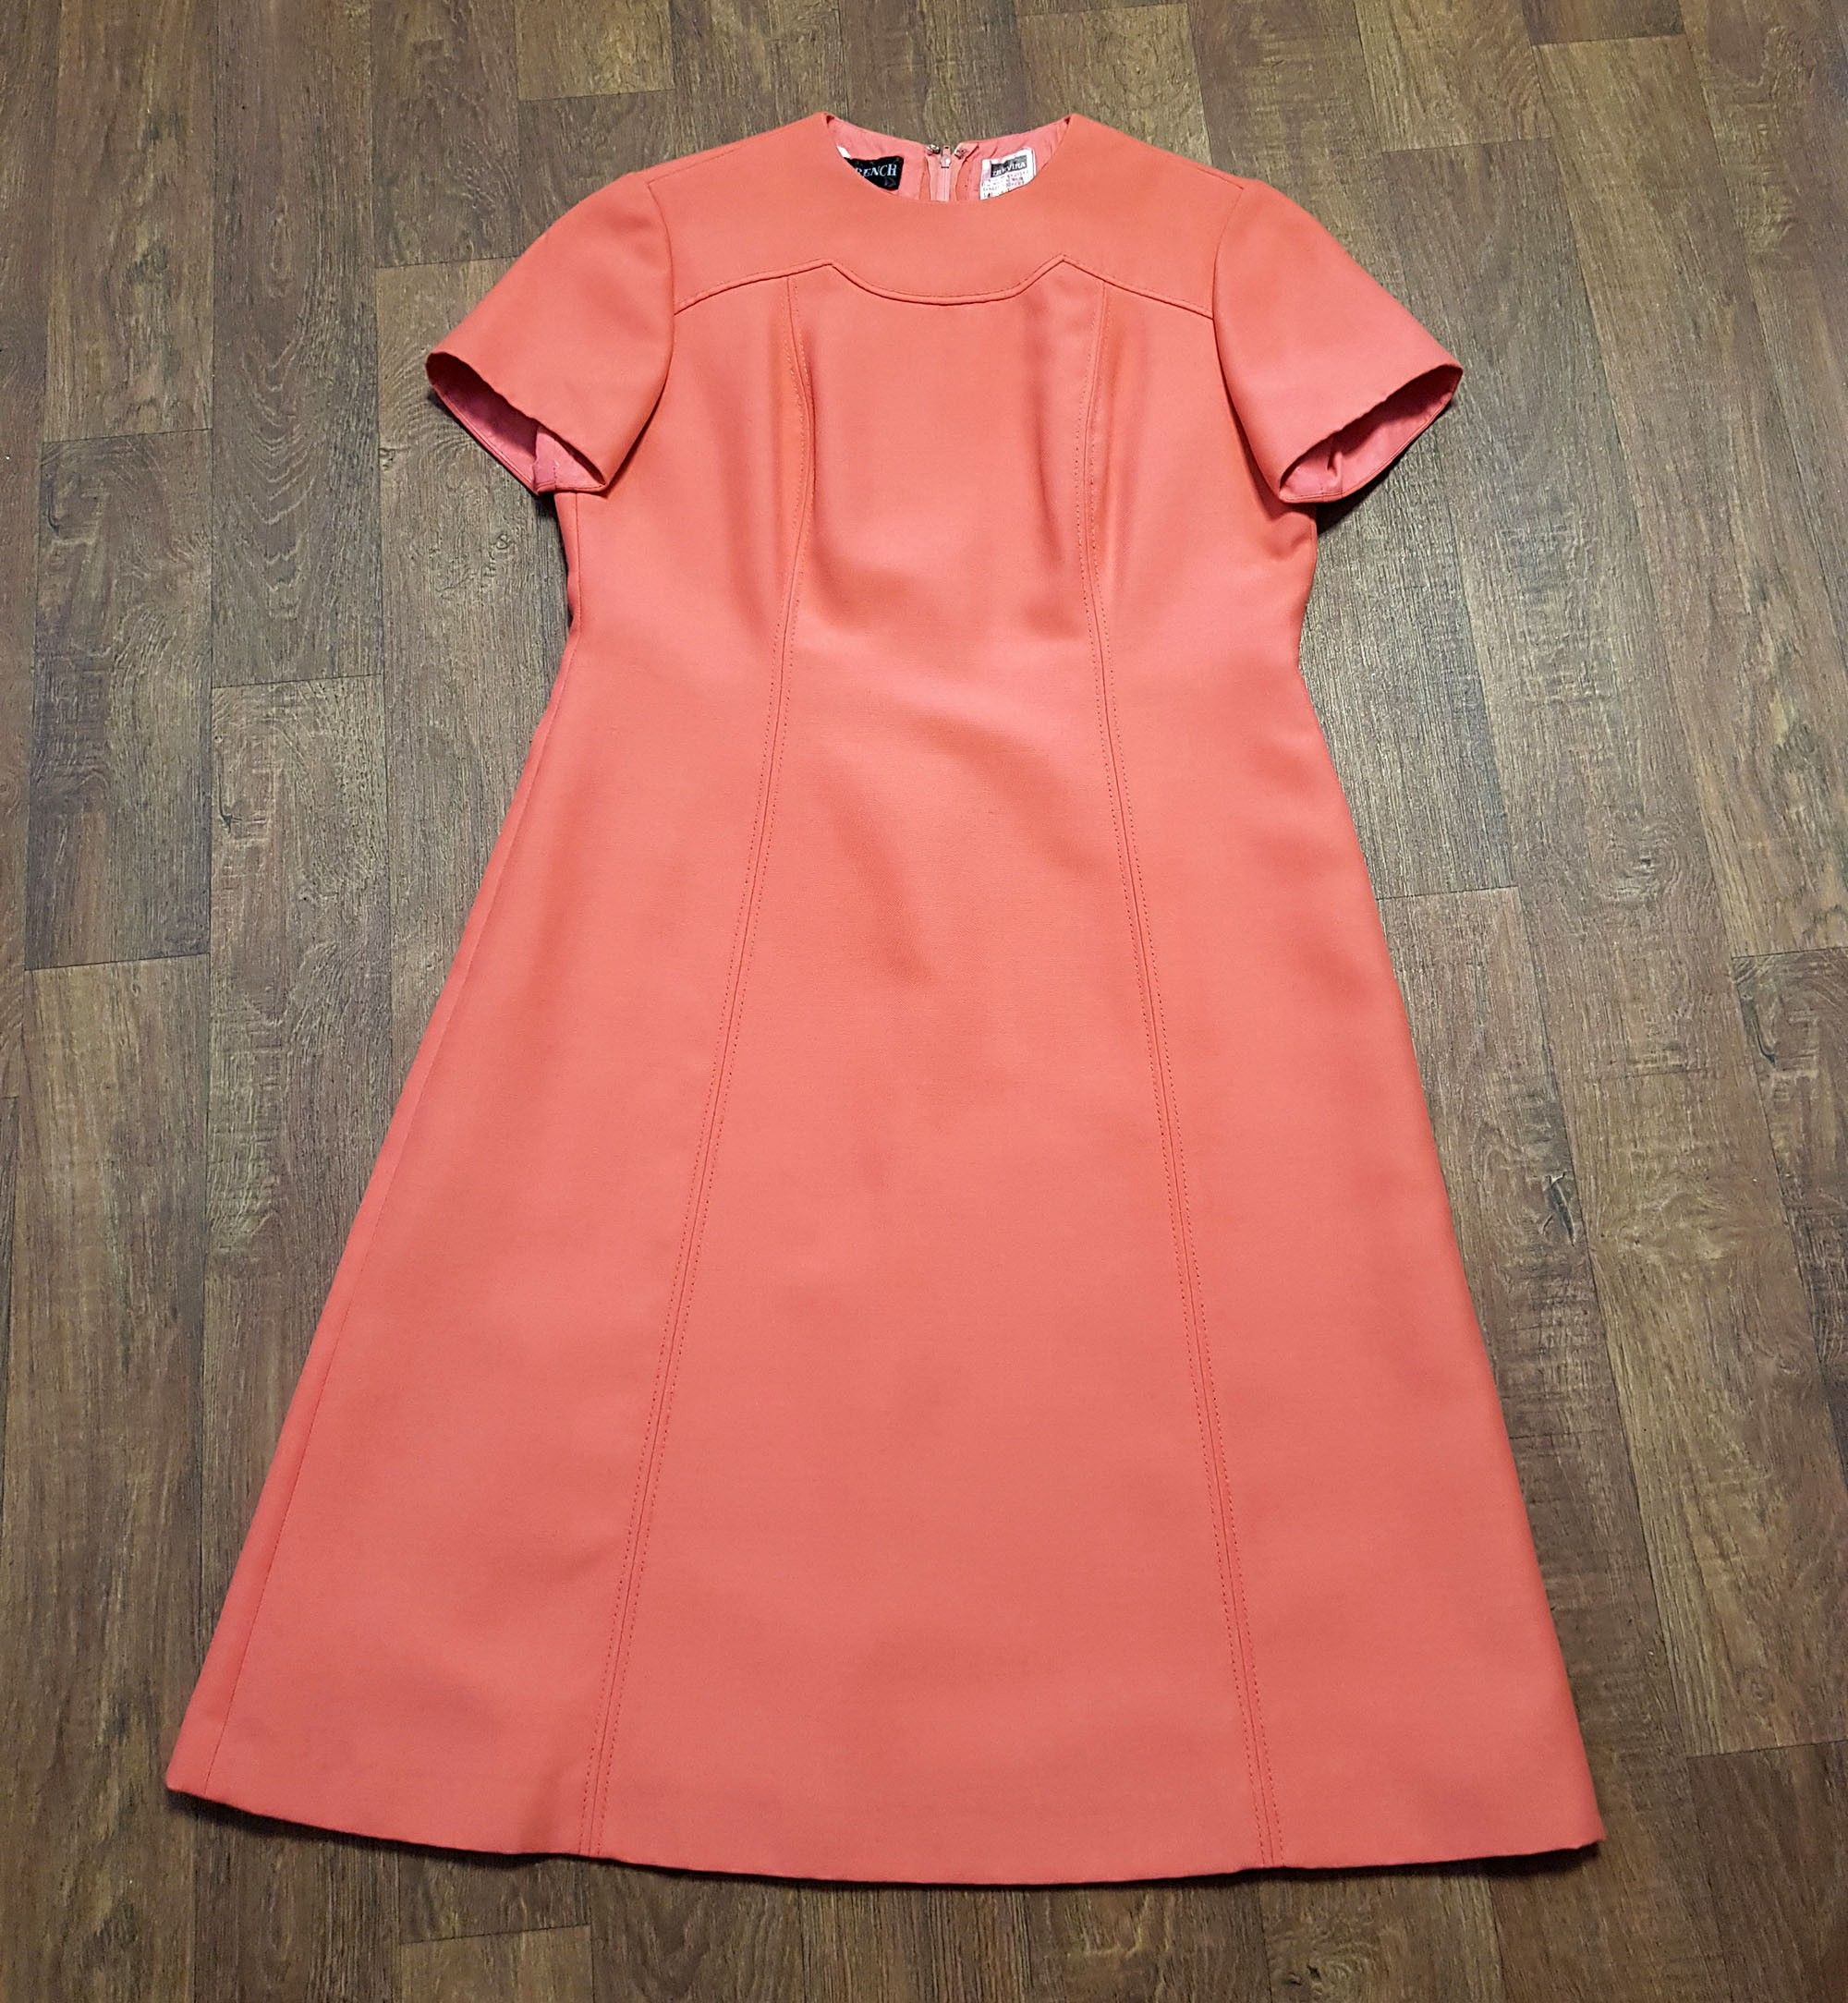 1960s Vintage Peggy French Couture Coral Shift Dress UK Size 16